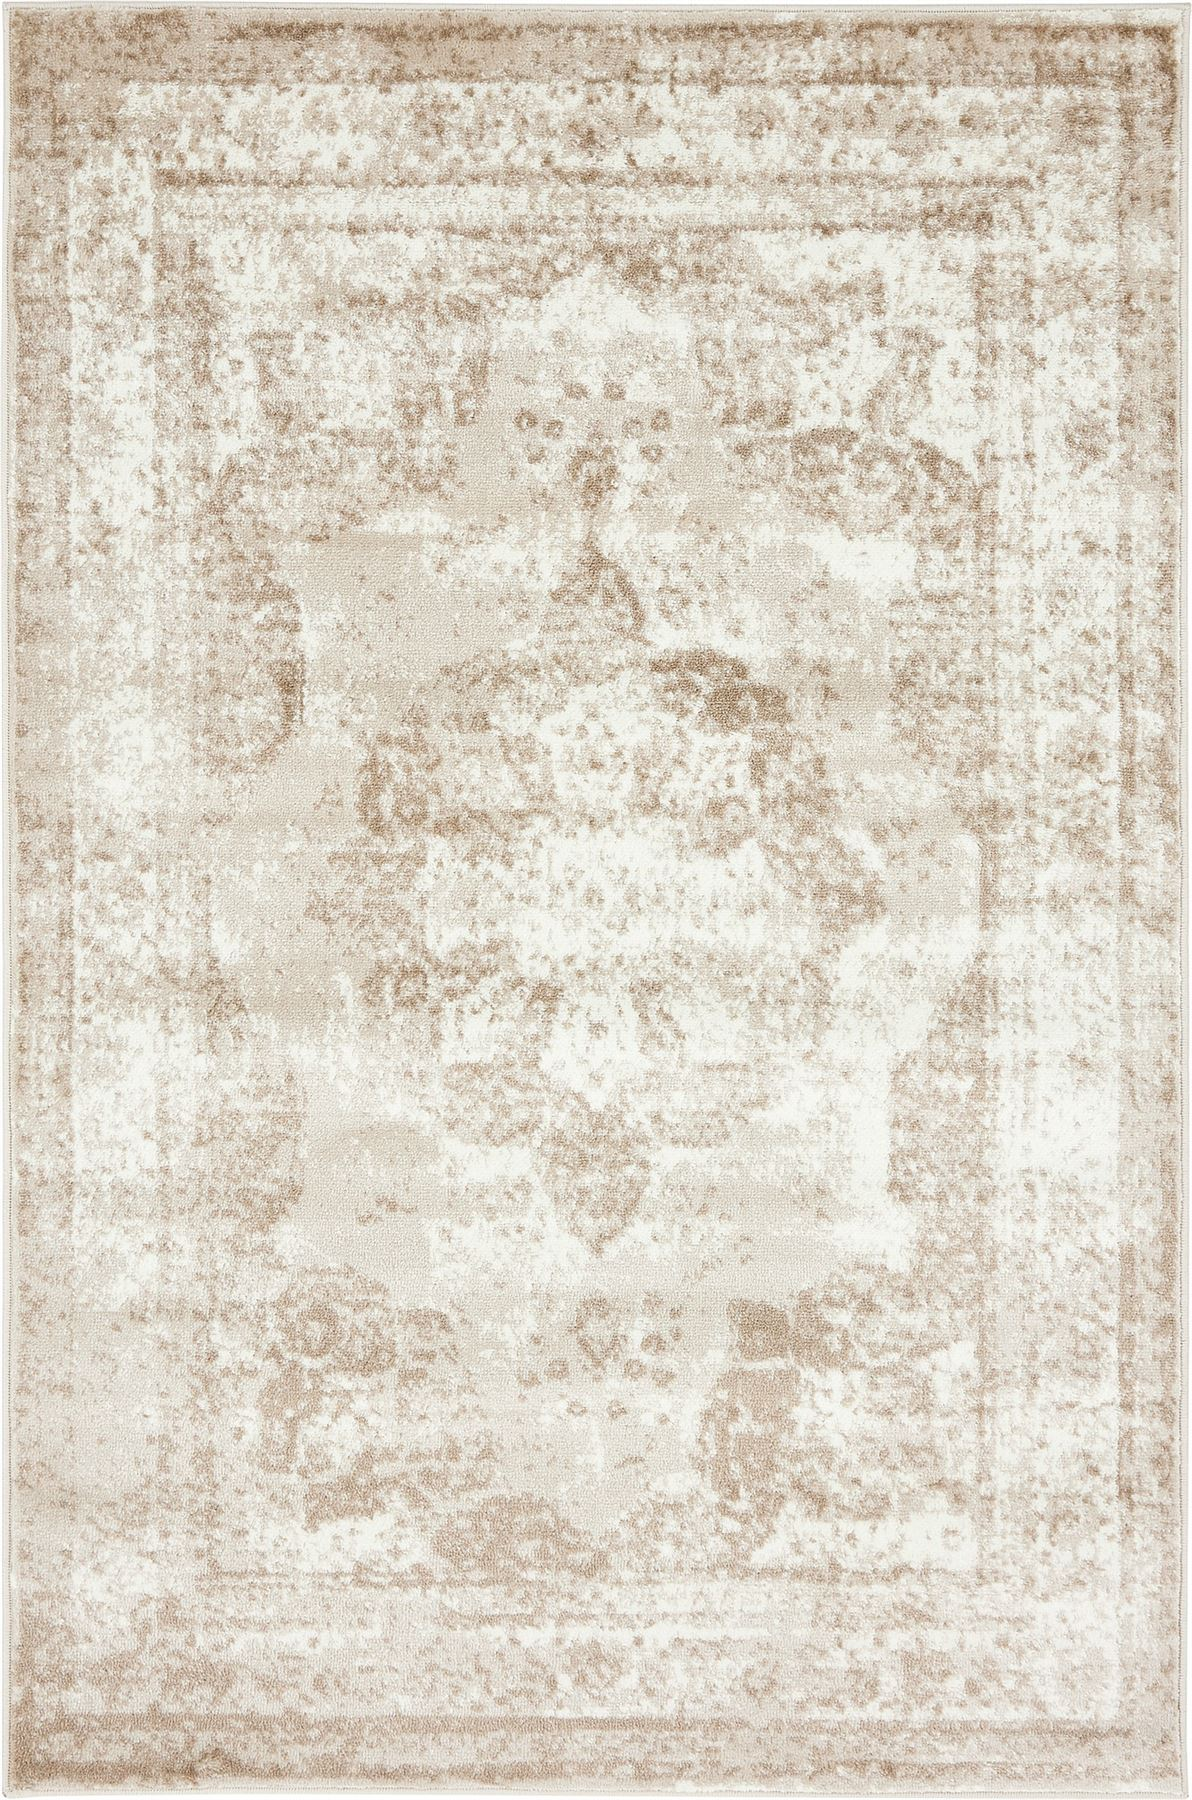 The Best Color Of West Elm Area Rugs Luxury